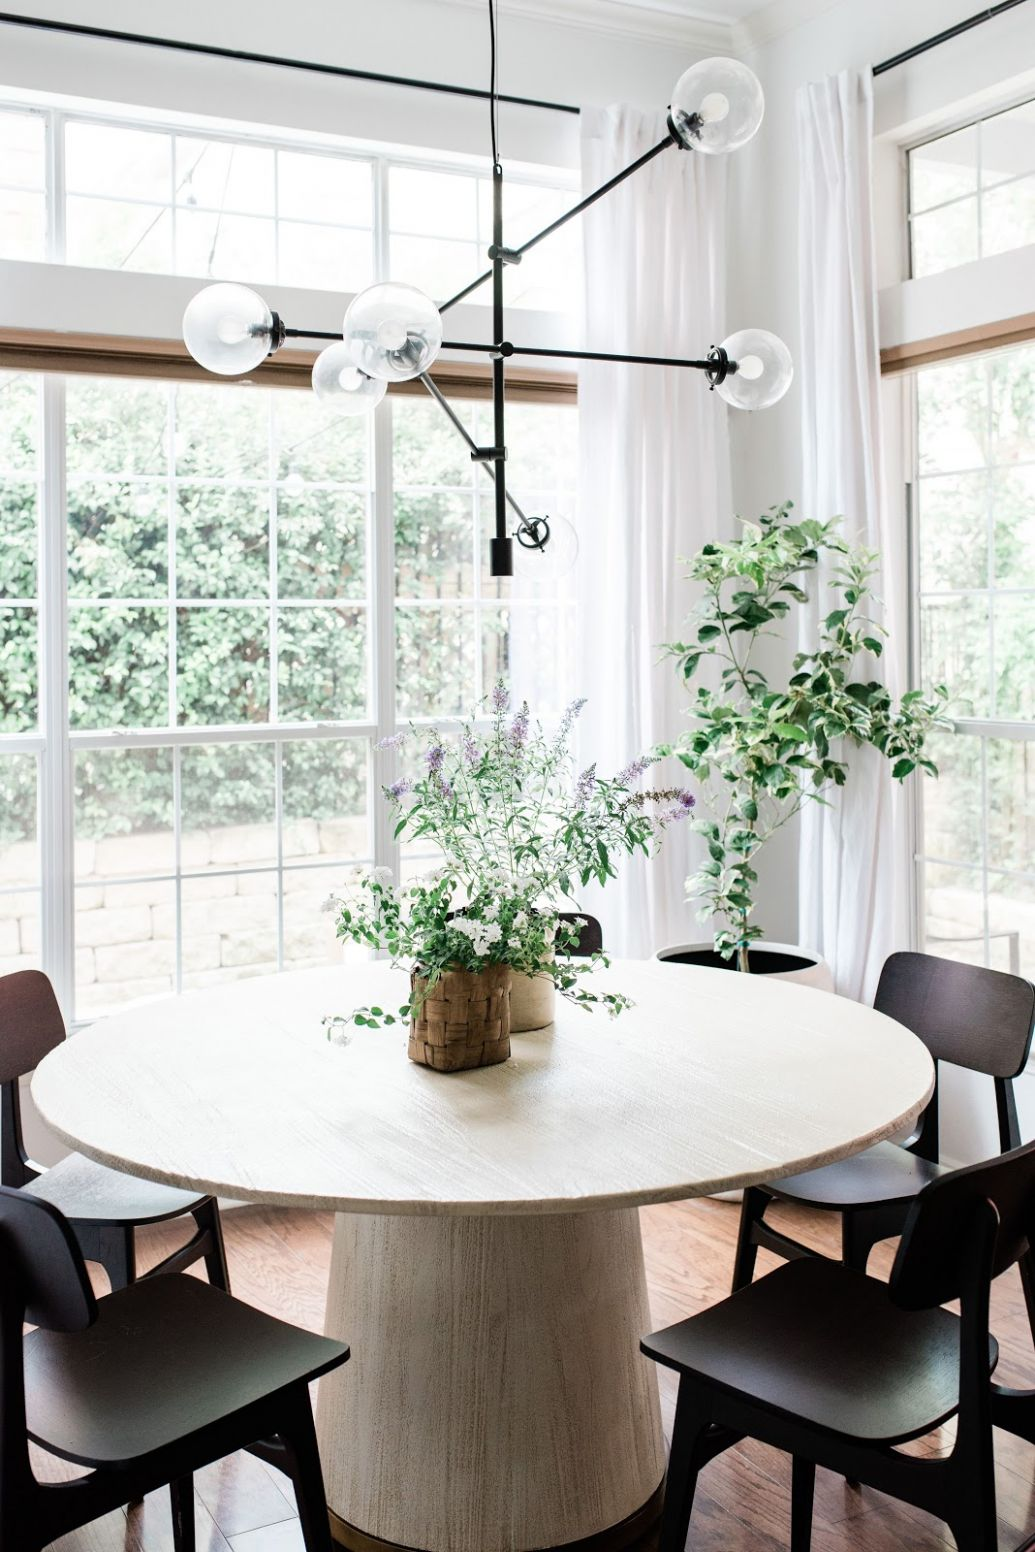 12 Small Dining Room Ideas to Make the Most of Your Space - dining room ideas with round table